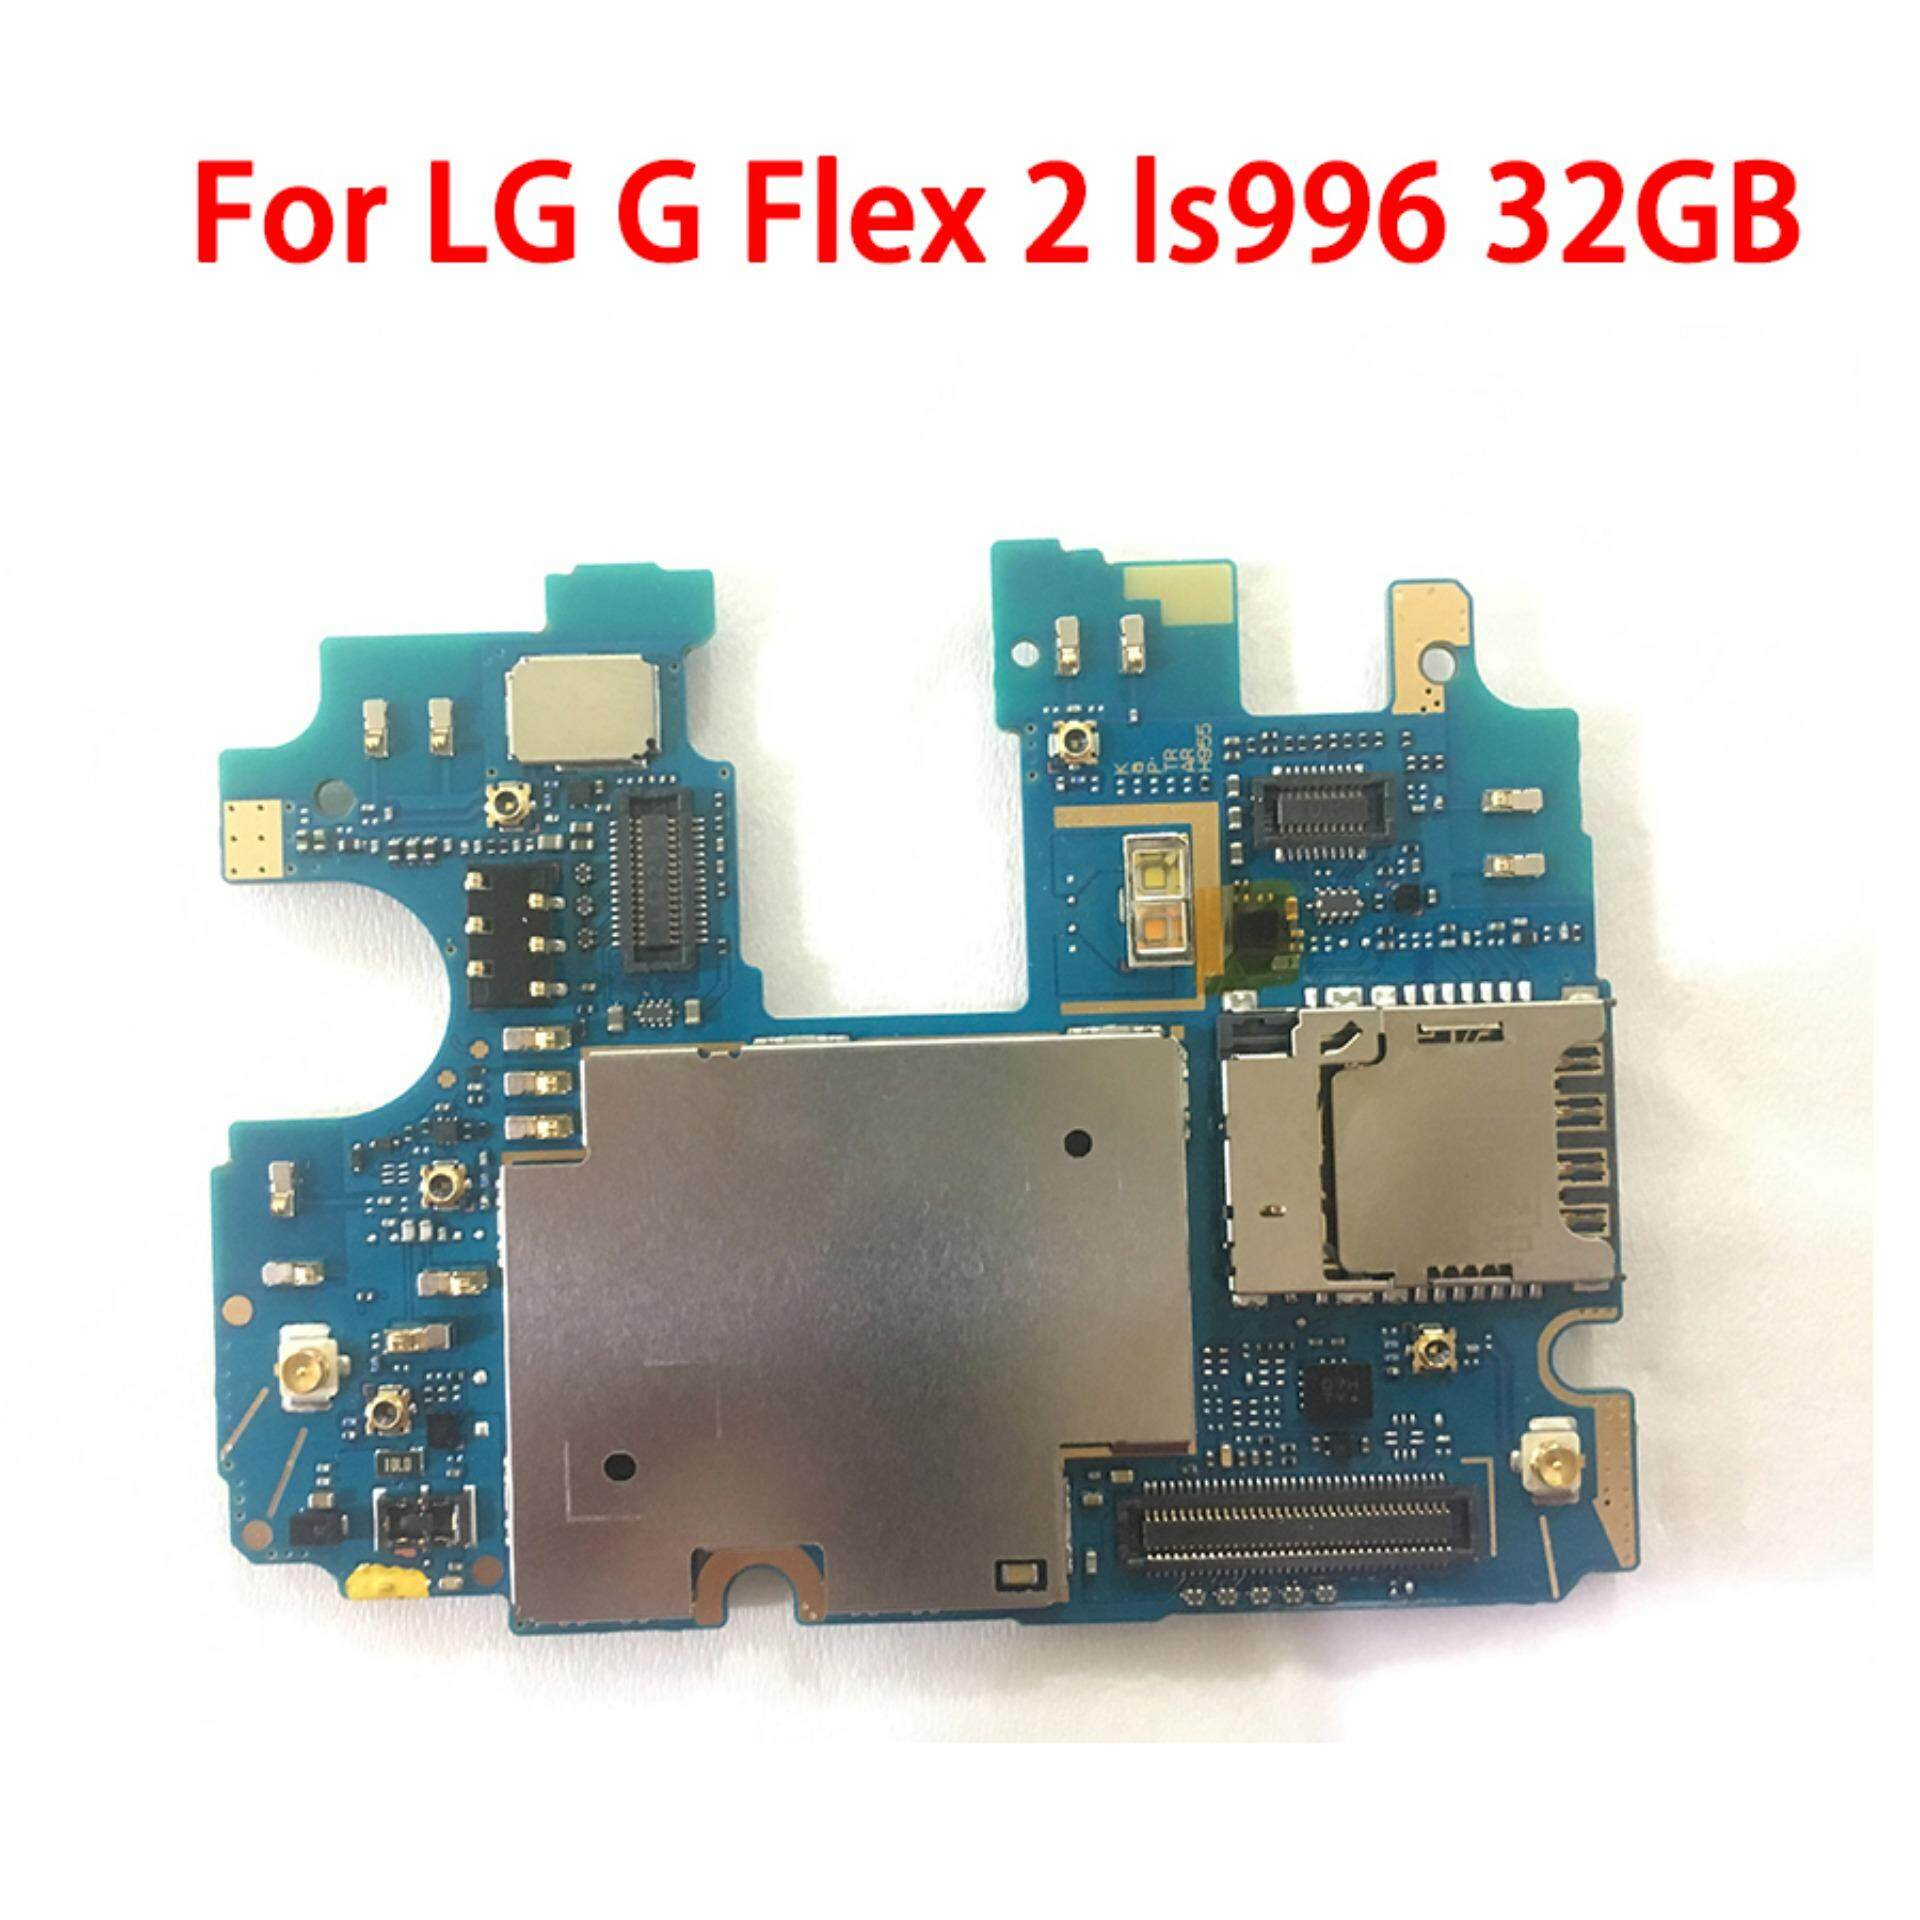 For LG G Flex 2 ls996 32GB Original Unlocked Mobile Electronic panel mainboard Motherboard Circuits Cable